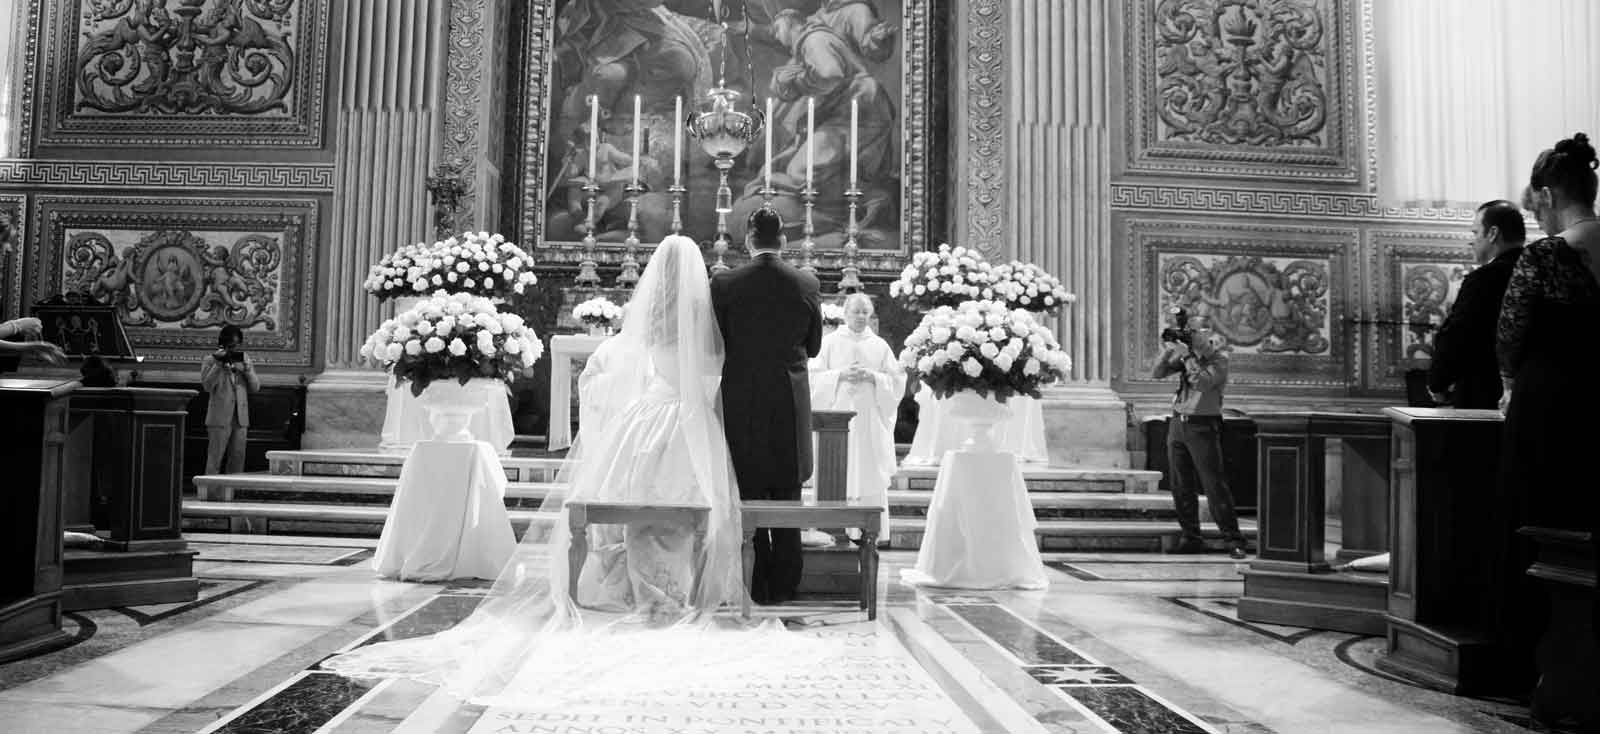 Catholic Ceremony In Italy